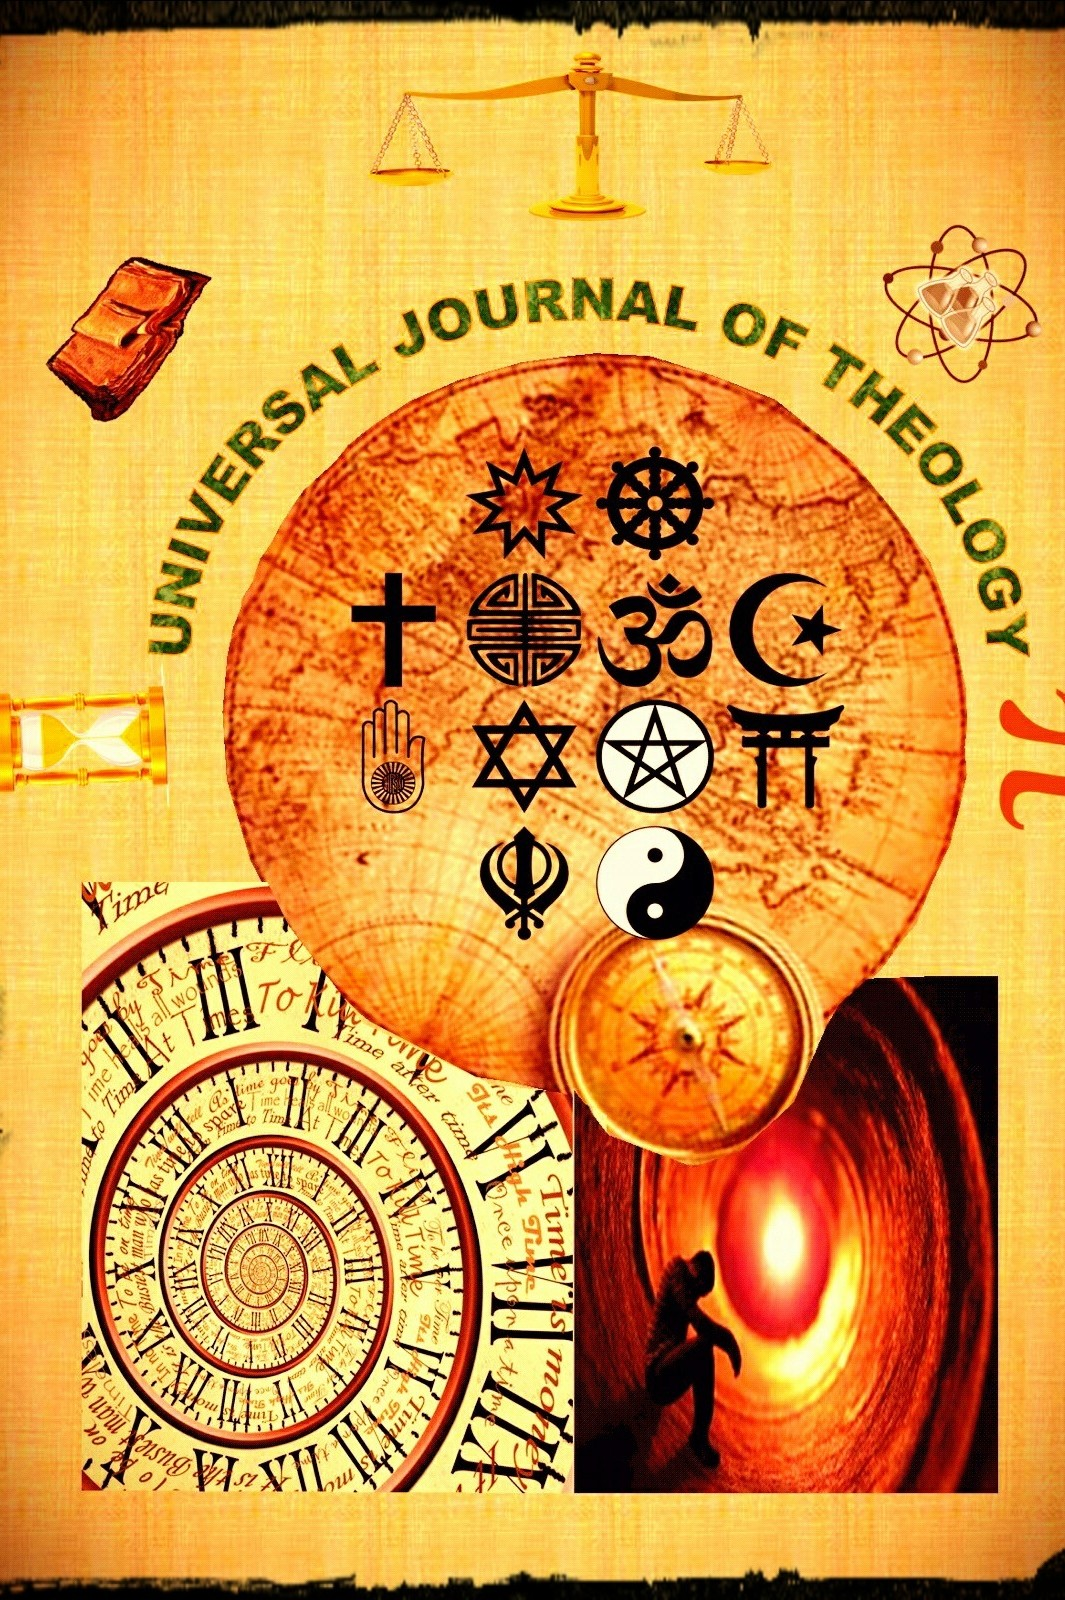 Universal Journal of Theology